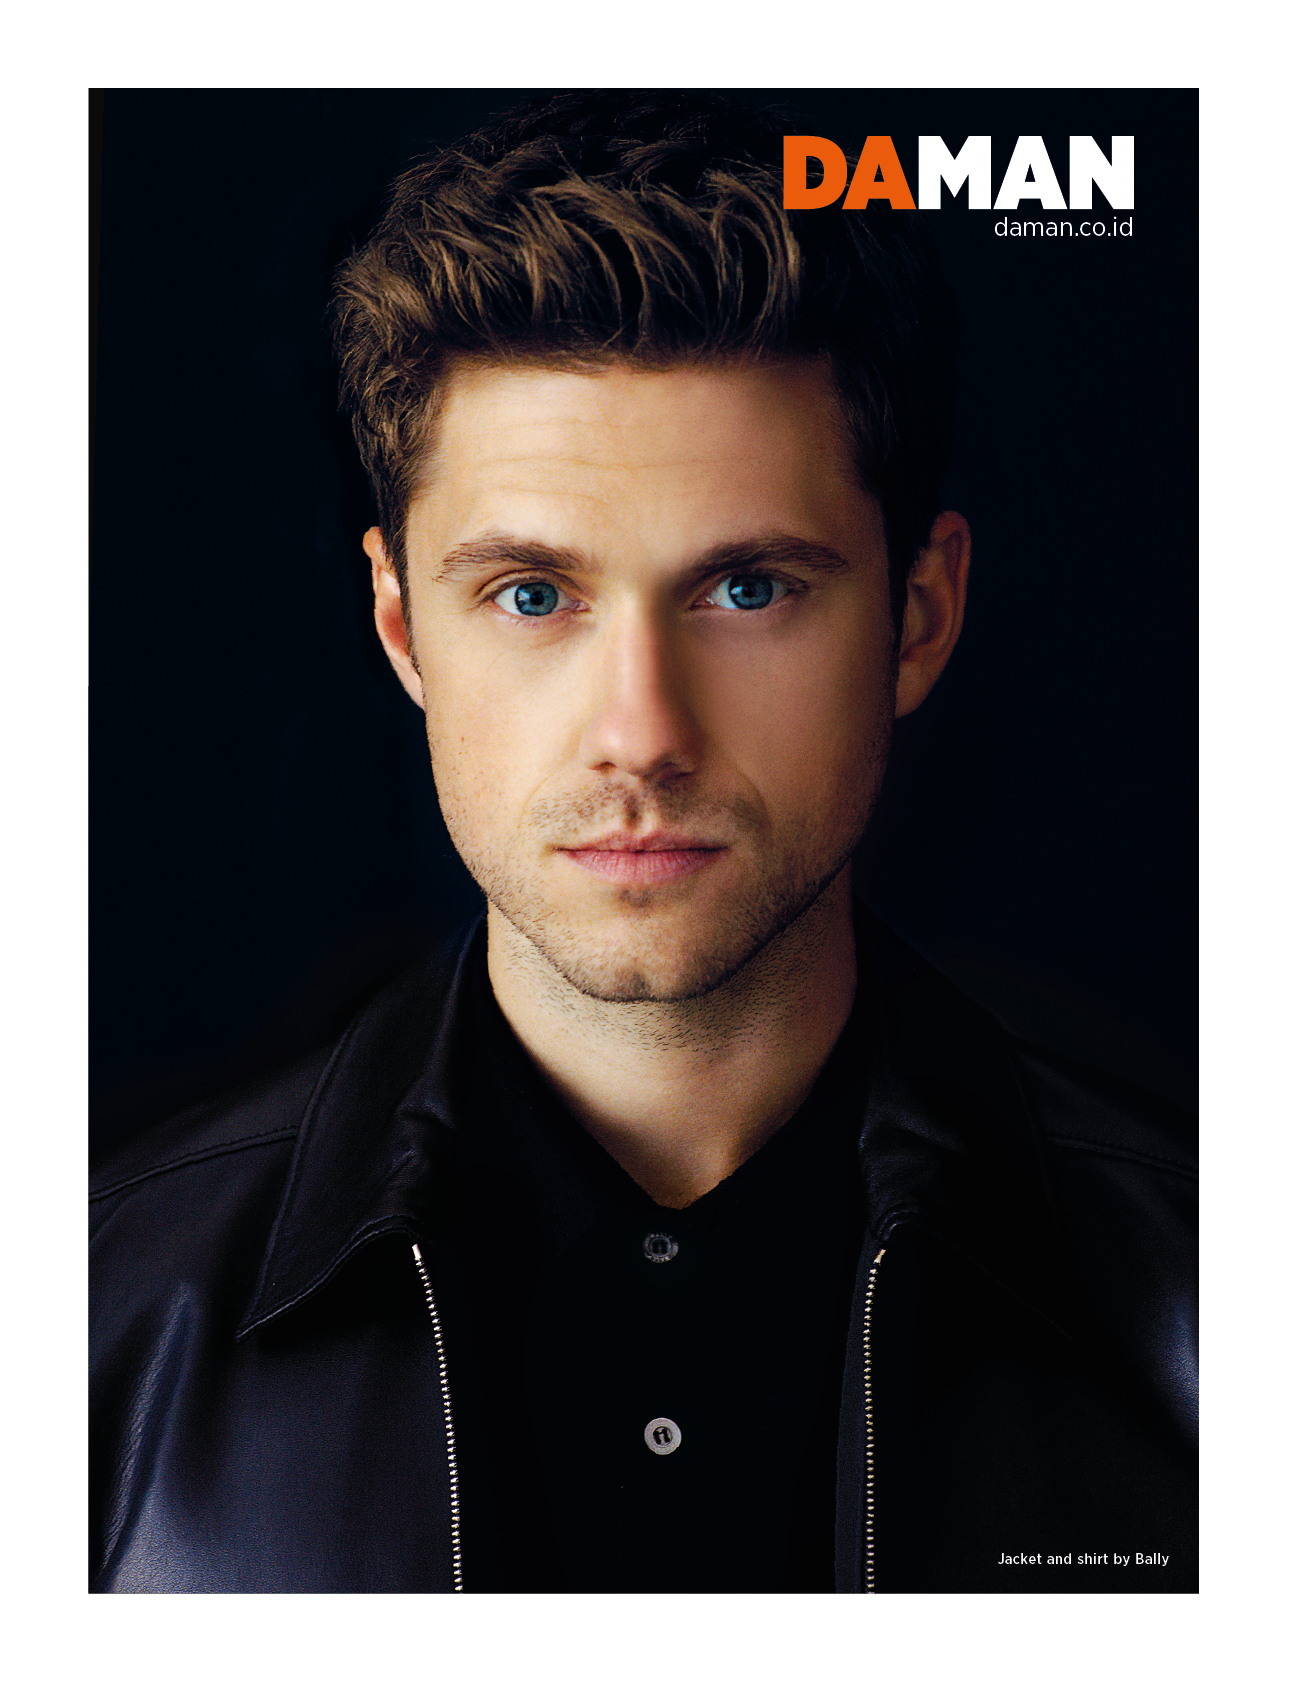 Aaron Tveit Jacket and shirt by Bally